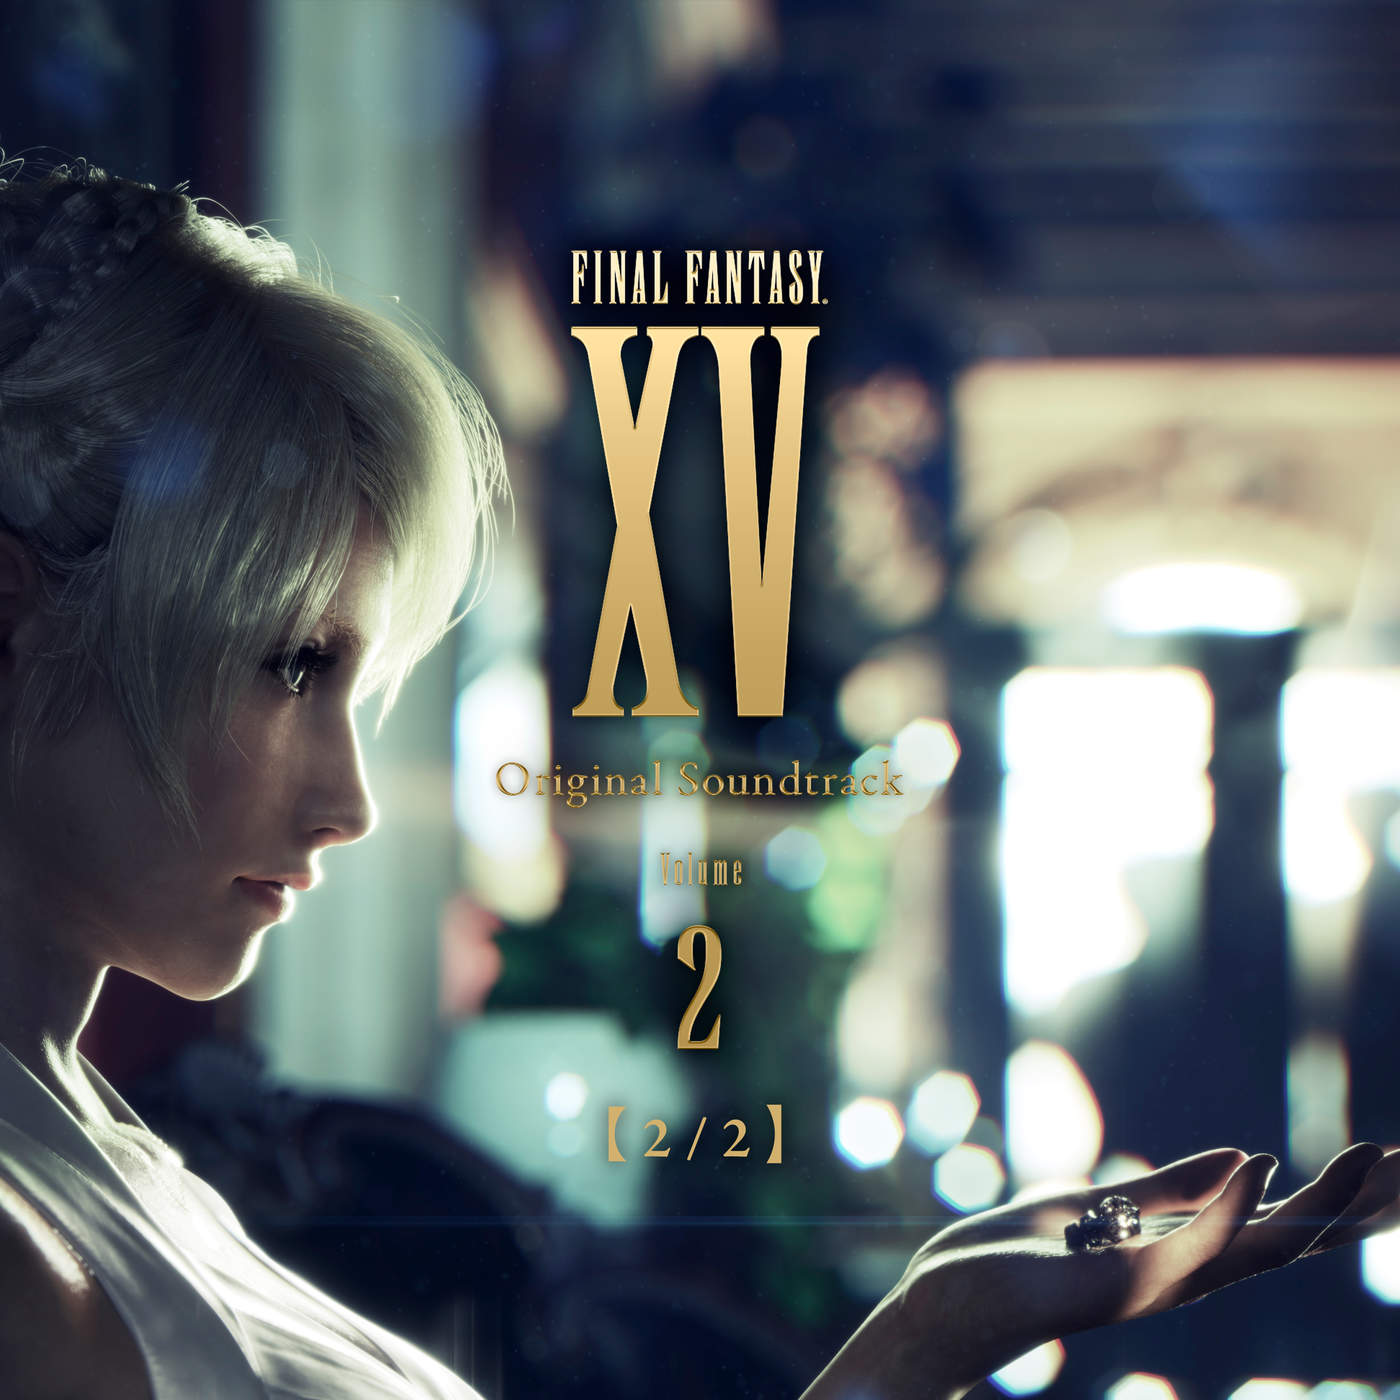 FINAL FANTASY XV Original Soundtrack Volume 2